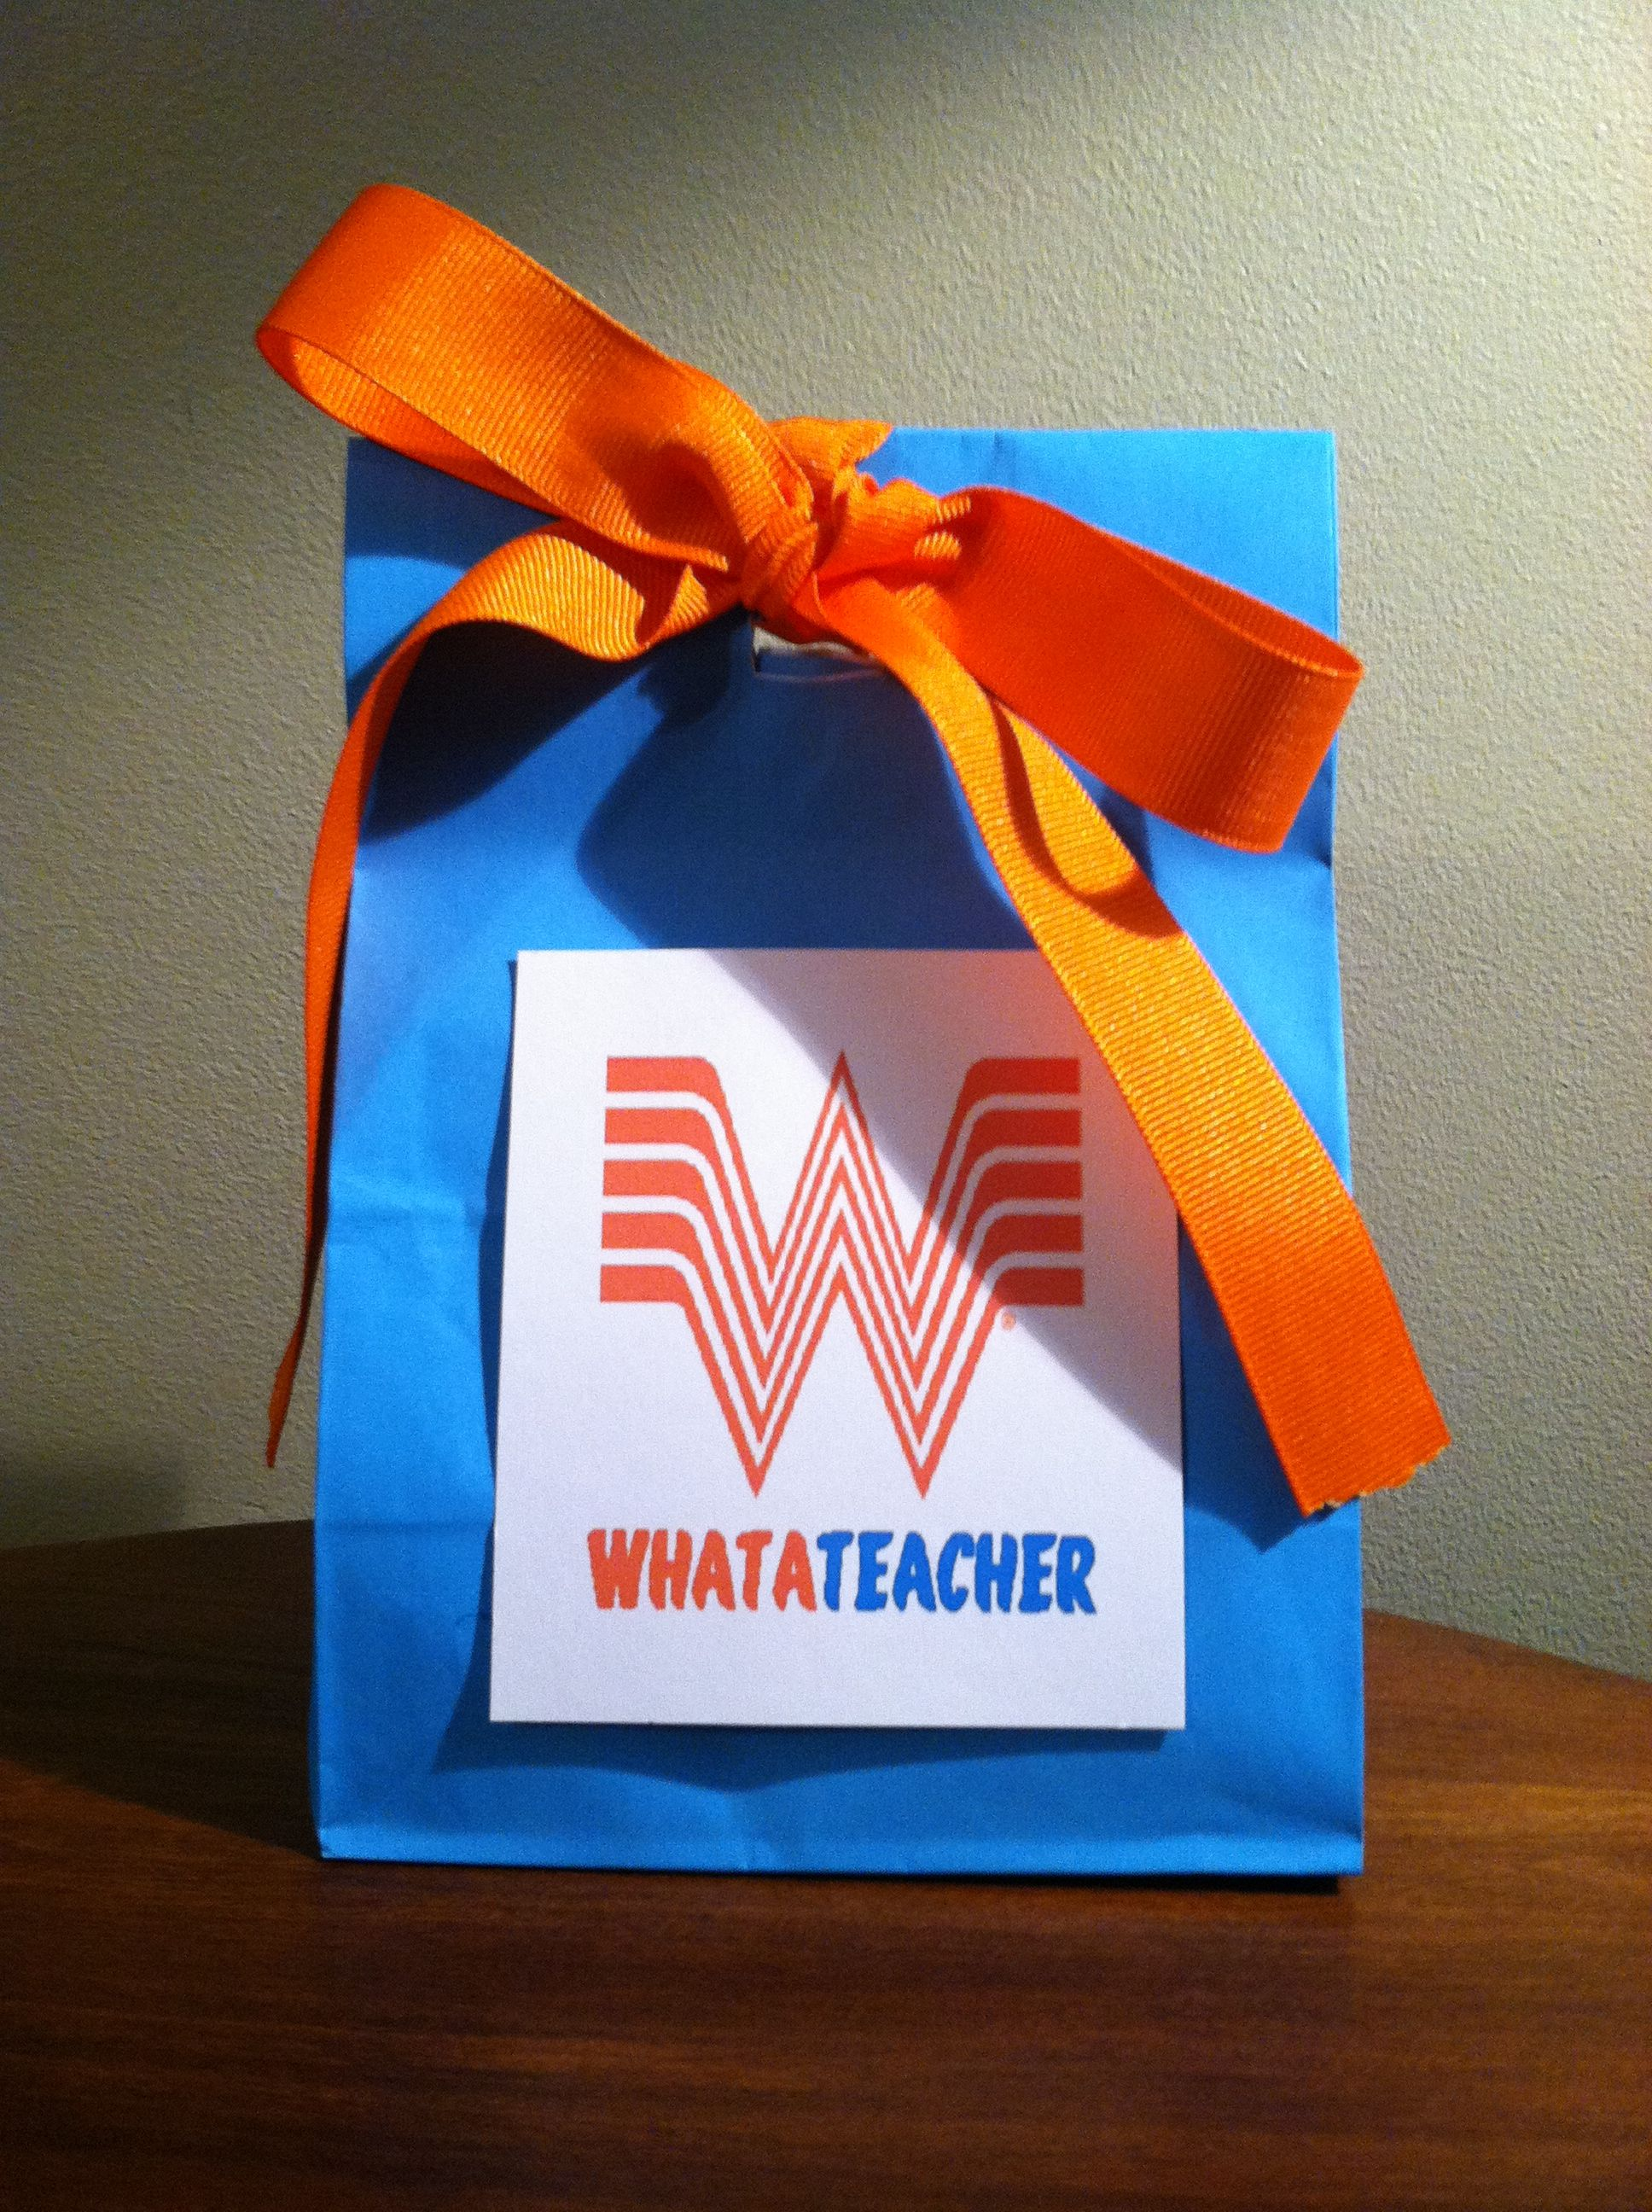 Used this for teacher appreciation week with a whataburger